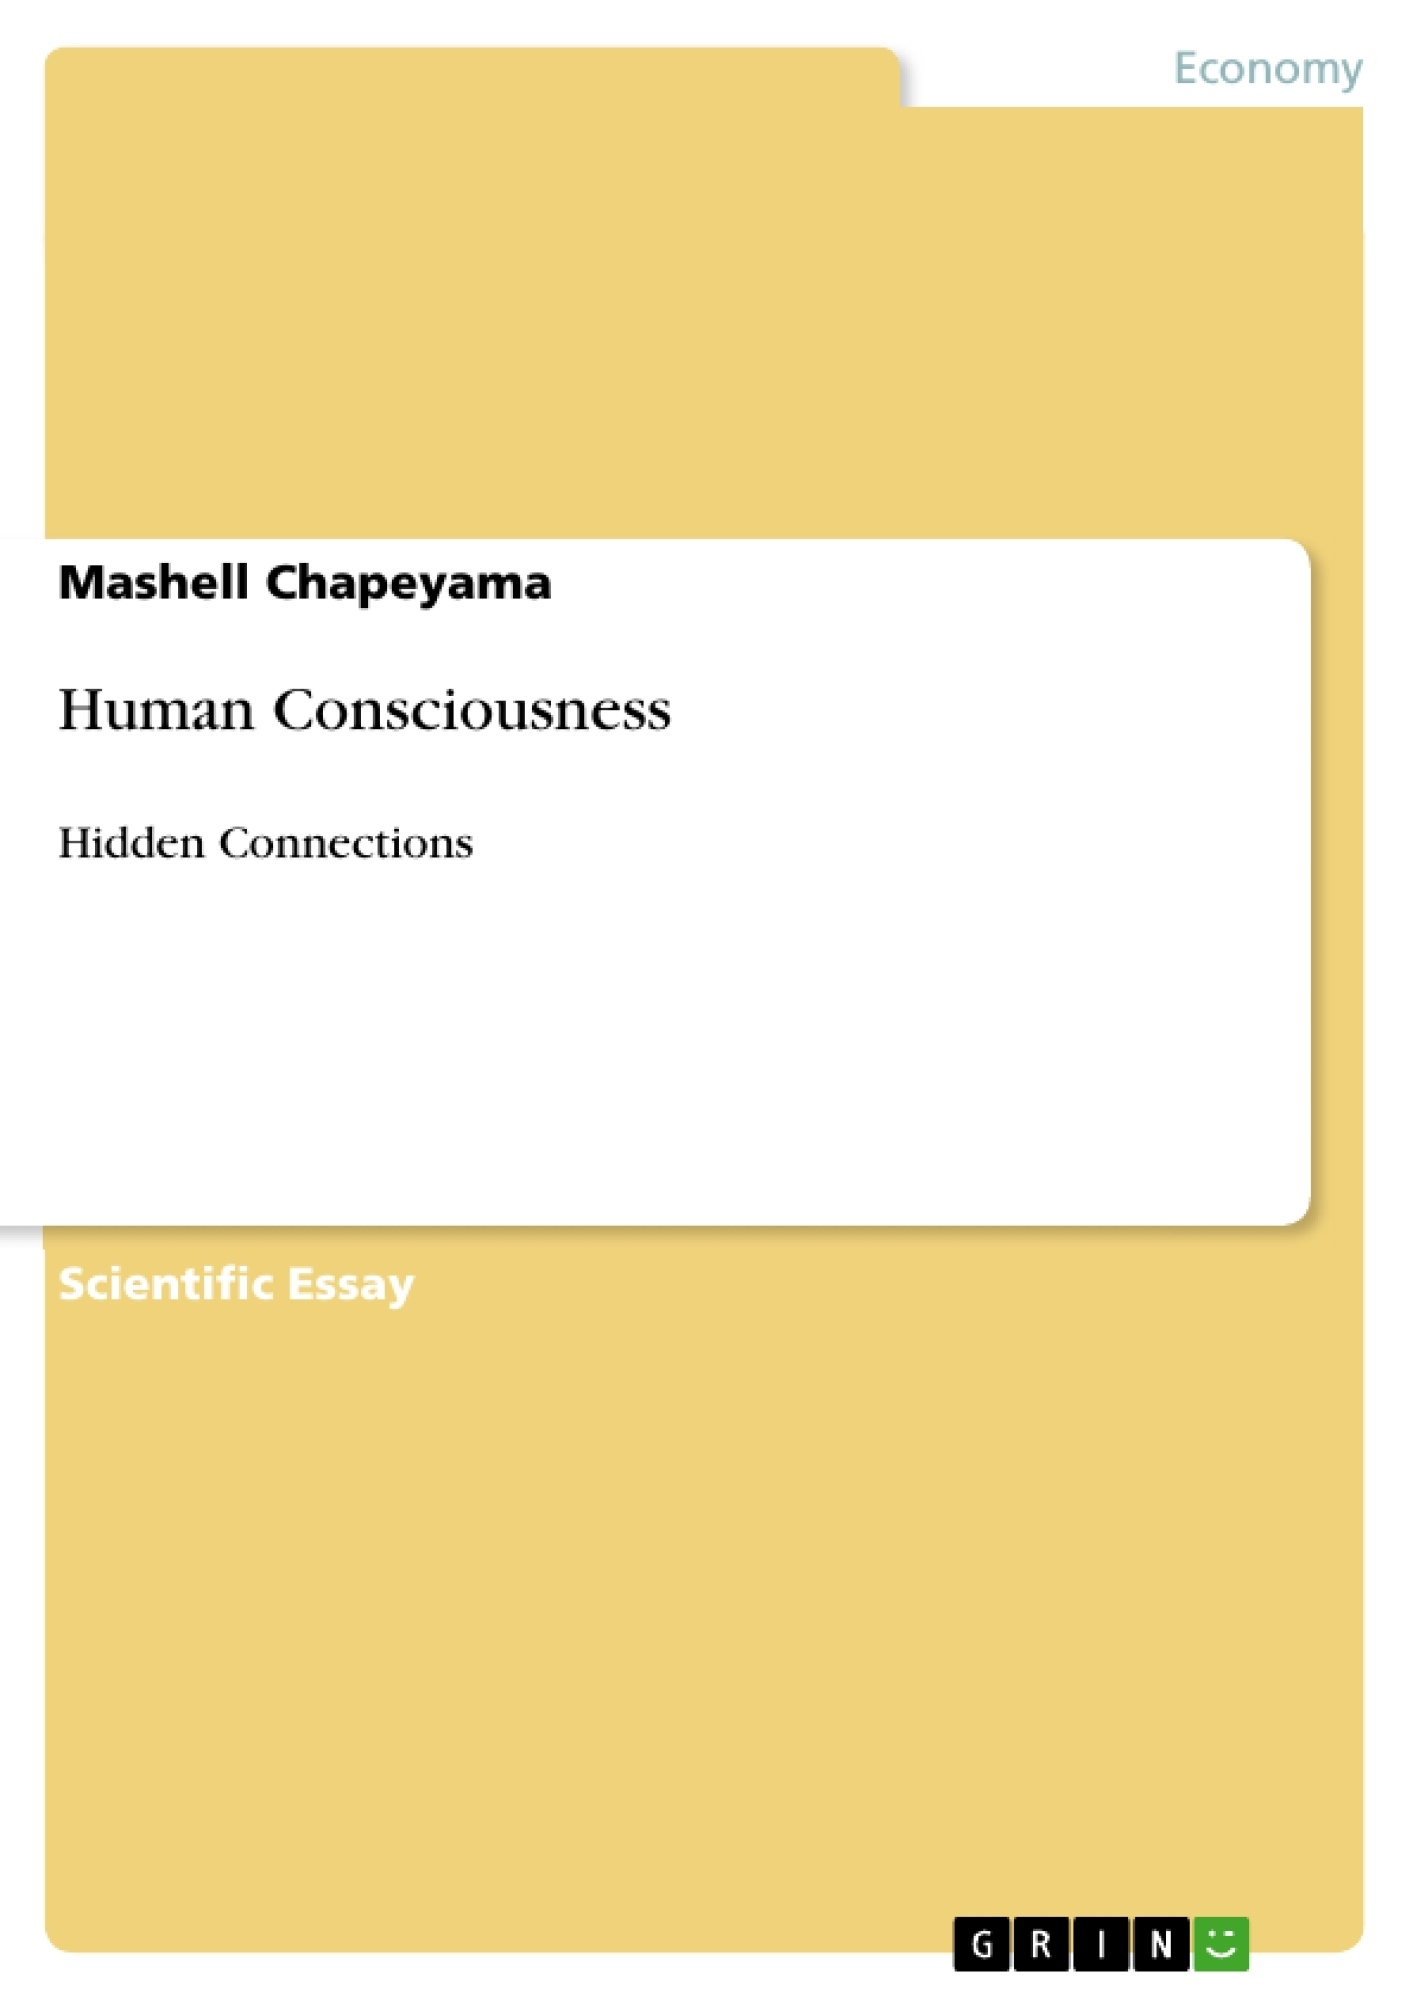 human consciousness essay The survival of human consciousness: essays on the possibilities of life after death paperback - september 12, 2006 by.